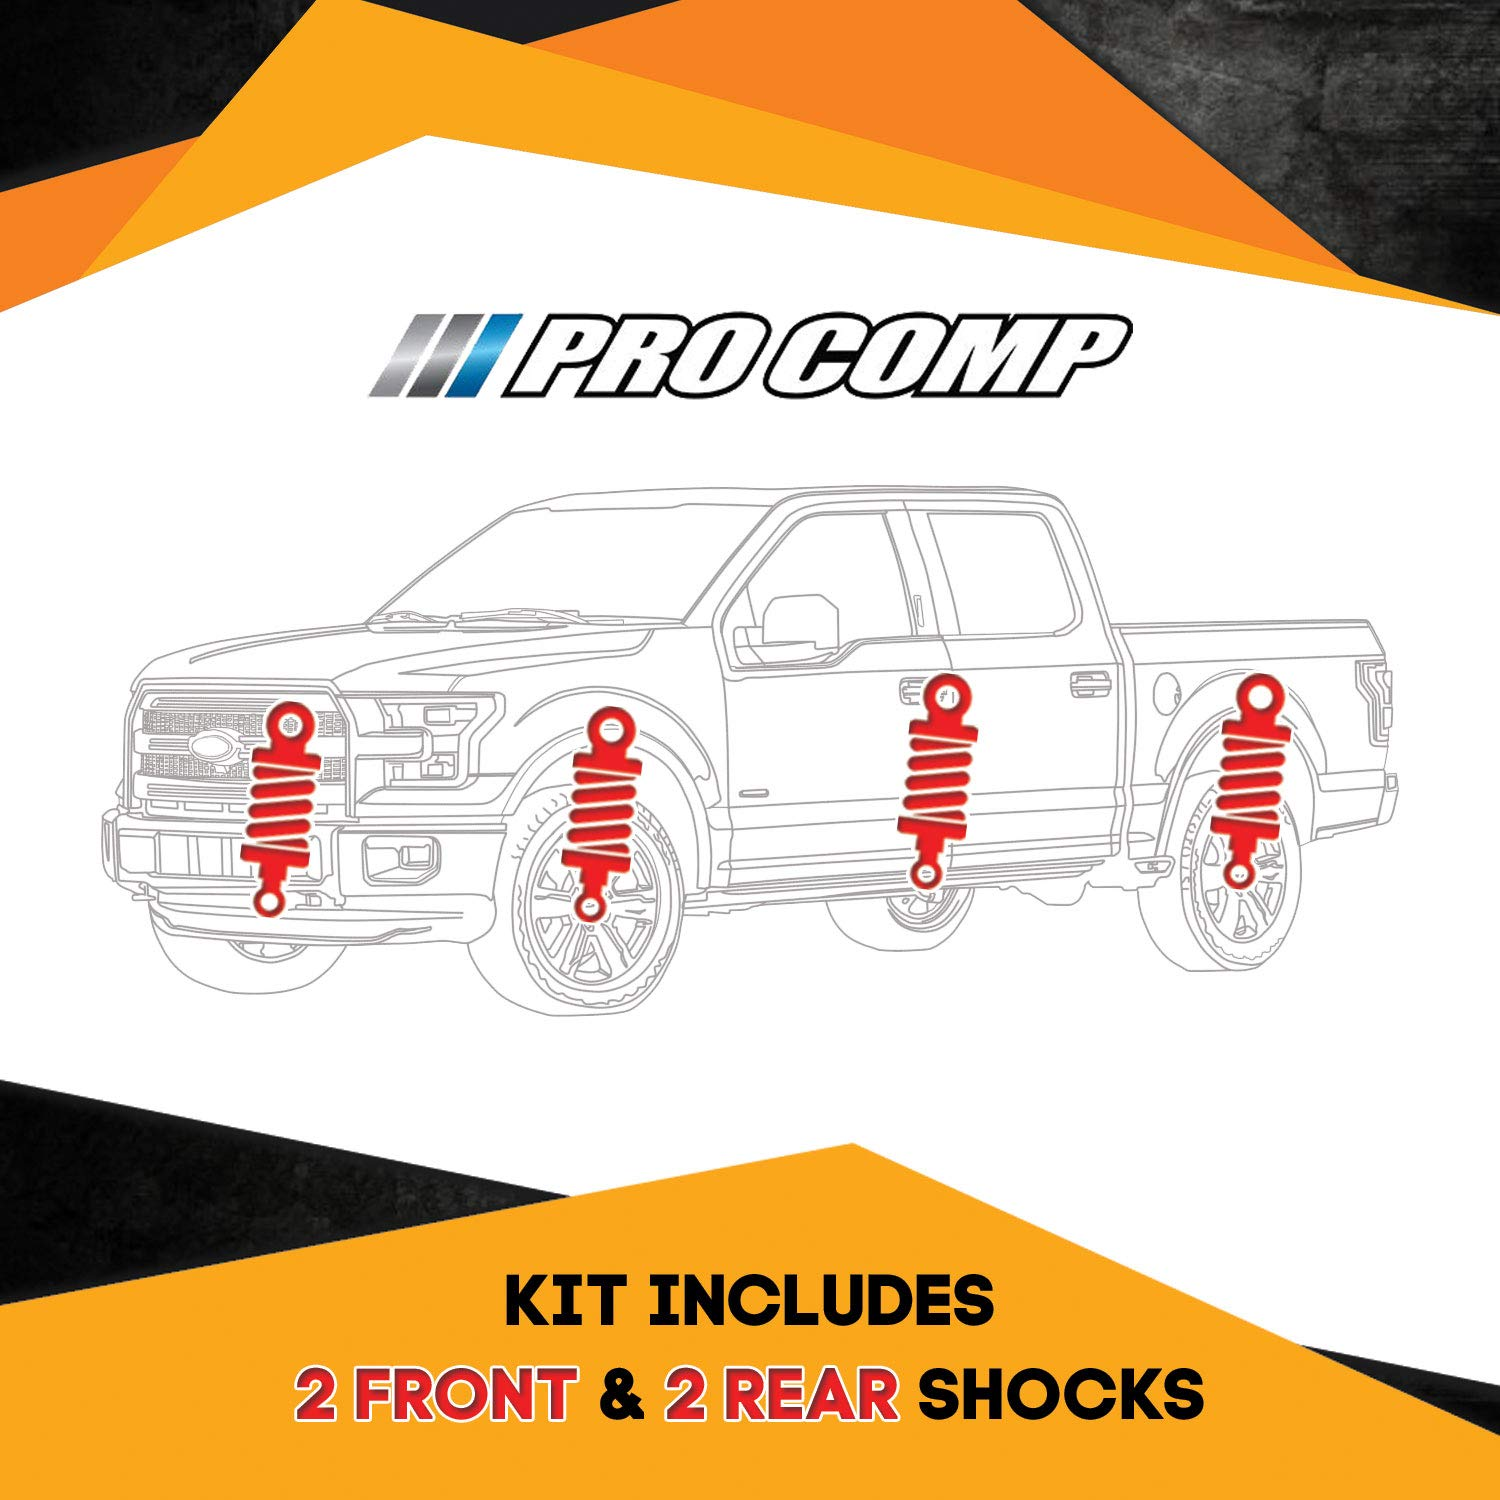 Pro Comp ES9000 Kit 4 Shocks for GMC Yukon K1500 92-99 4WD 6 inch Lift Ride Series Replacement Shock Absorbers